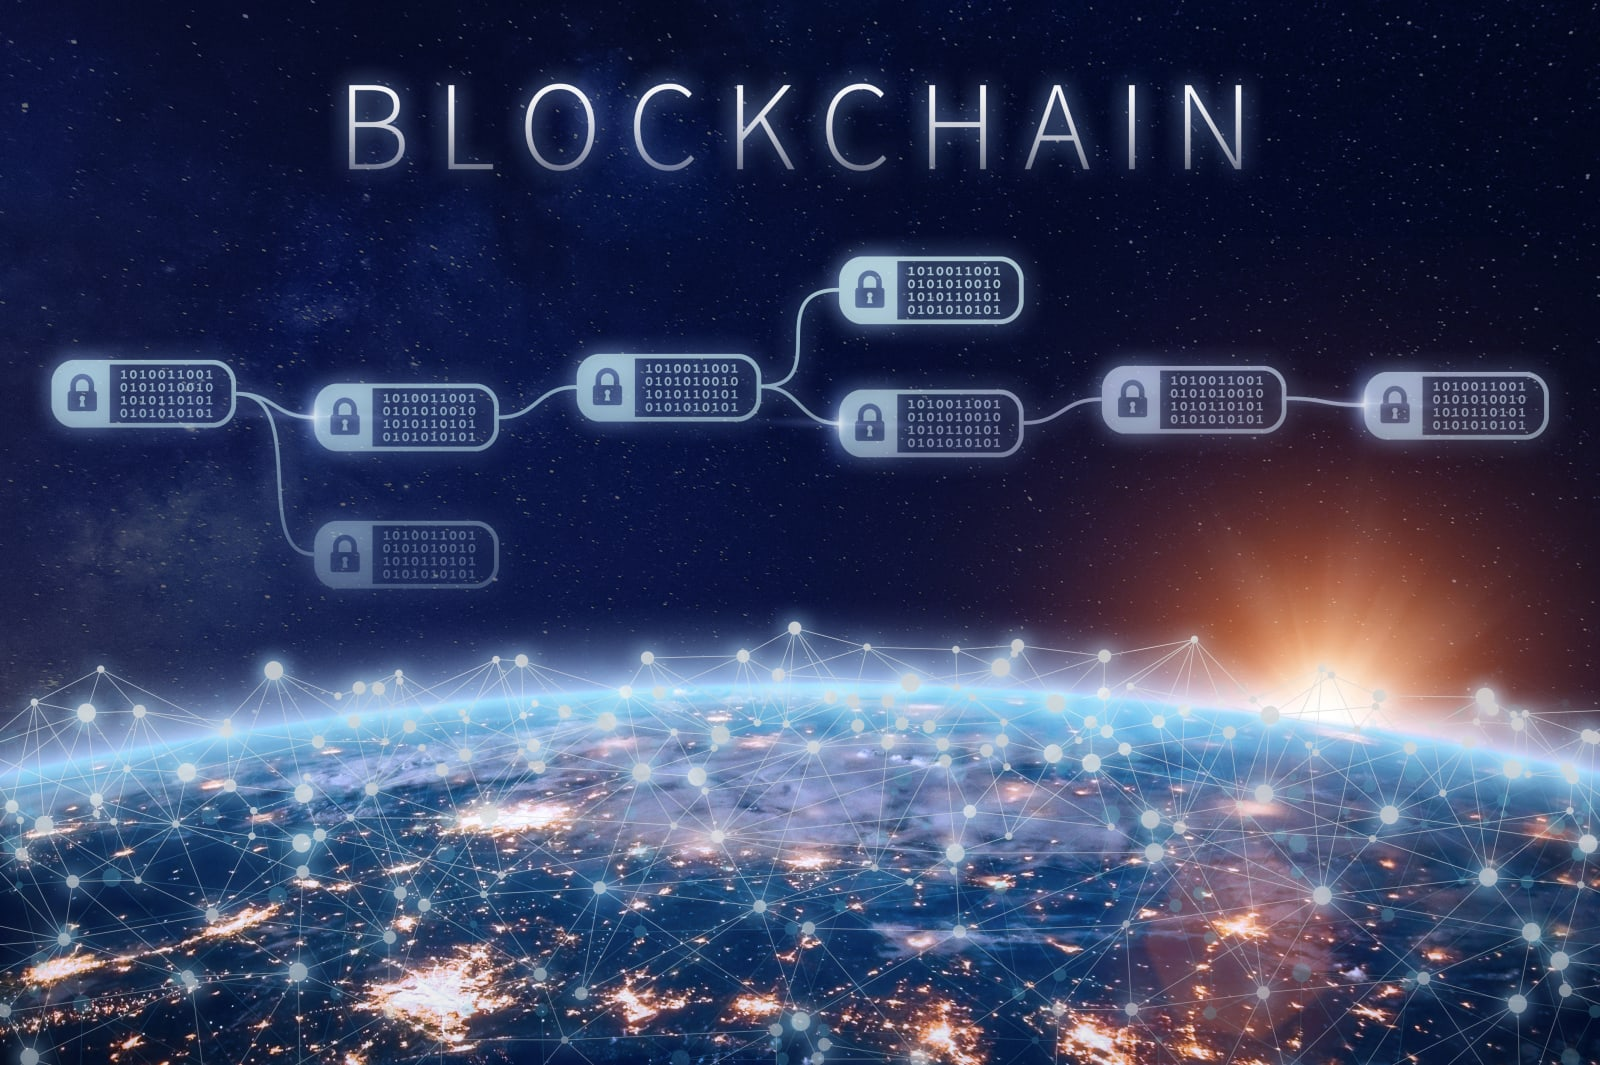 Blockchain financial technology concept, network encrypted chain of blocks, Earth